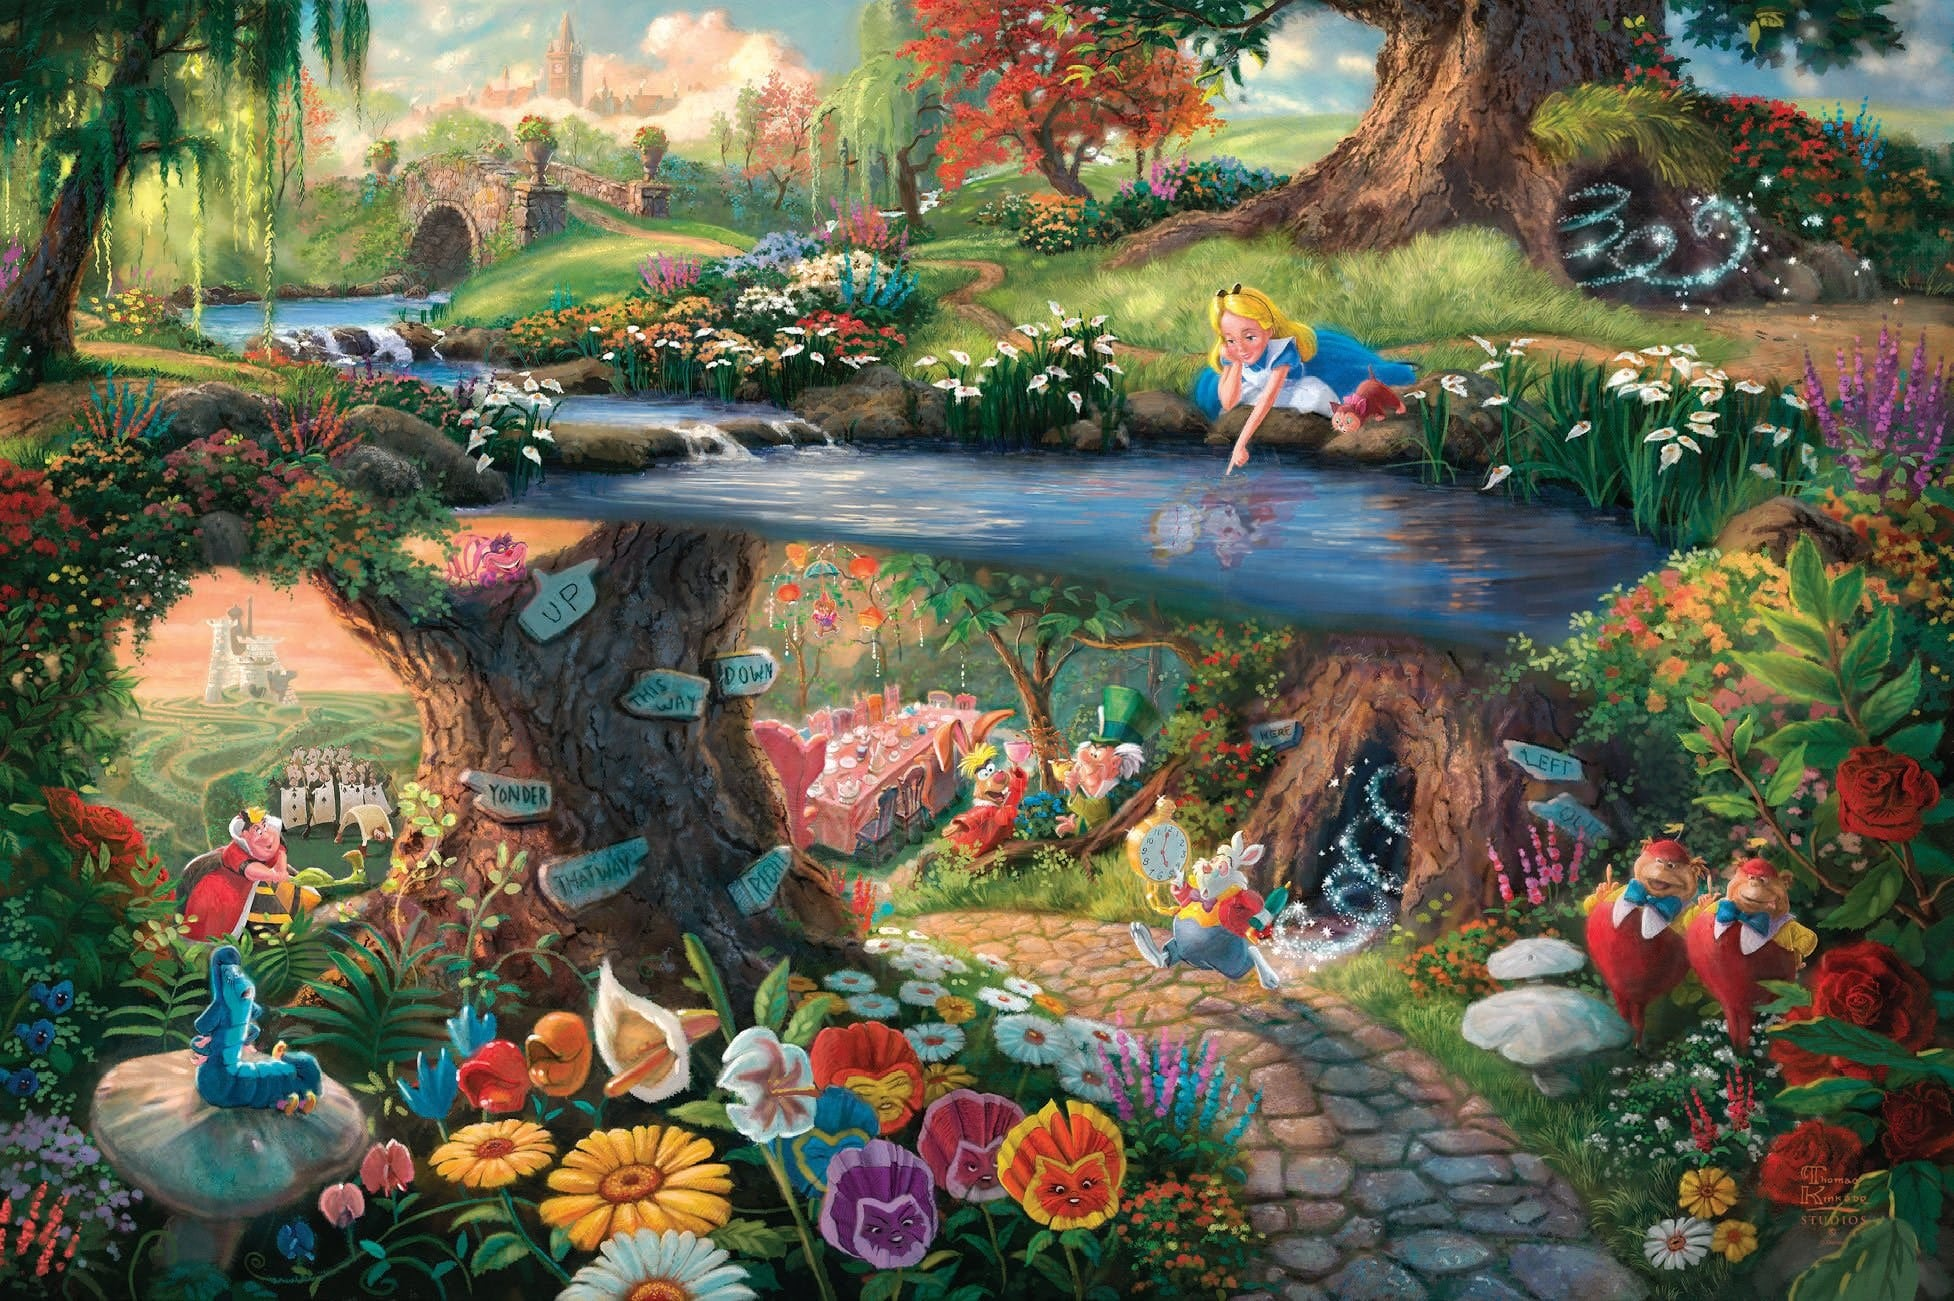 Alice in Wonderland Wallpaper & Alice Theme H Alice in Wonderland Movie Wallpaper & Through The Looking Glass Themes